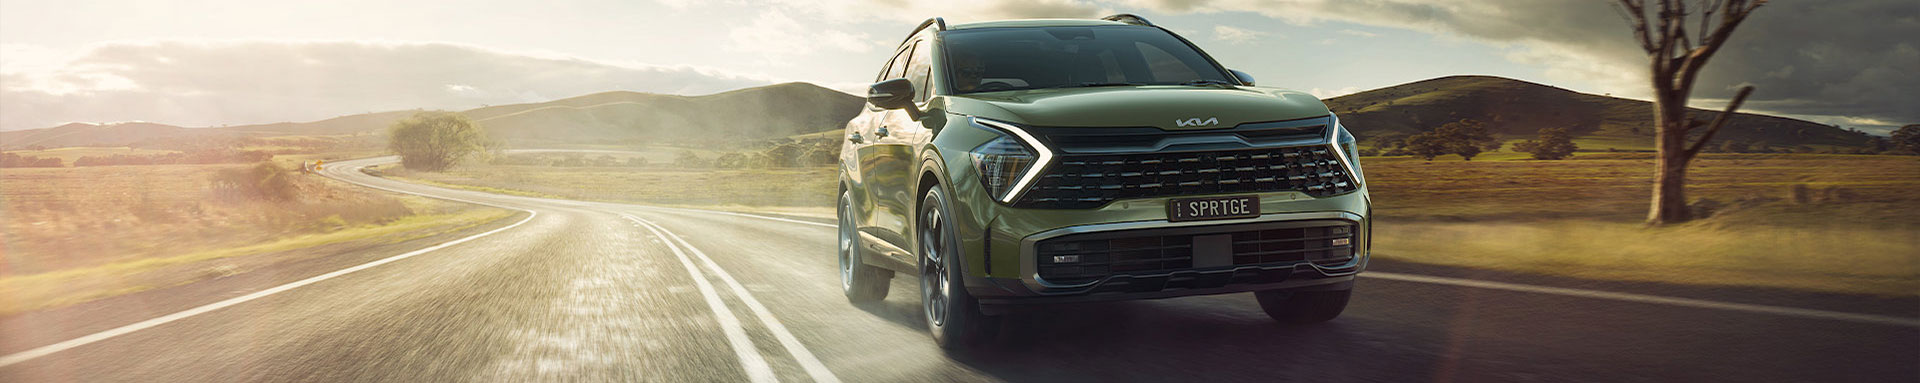 Essendon Kia Sportage